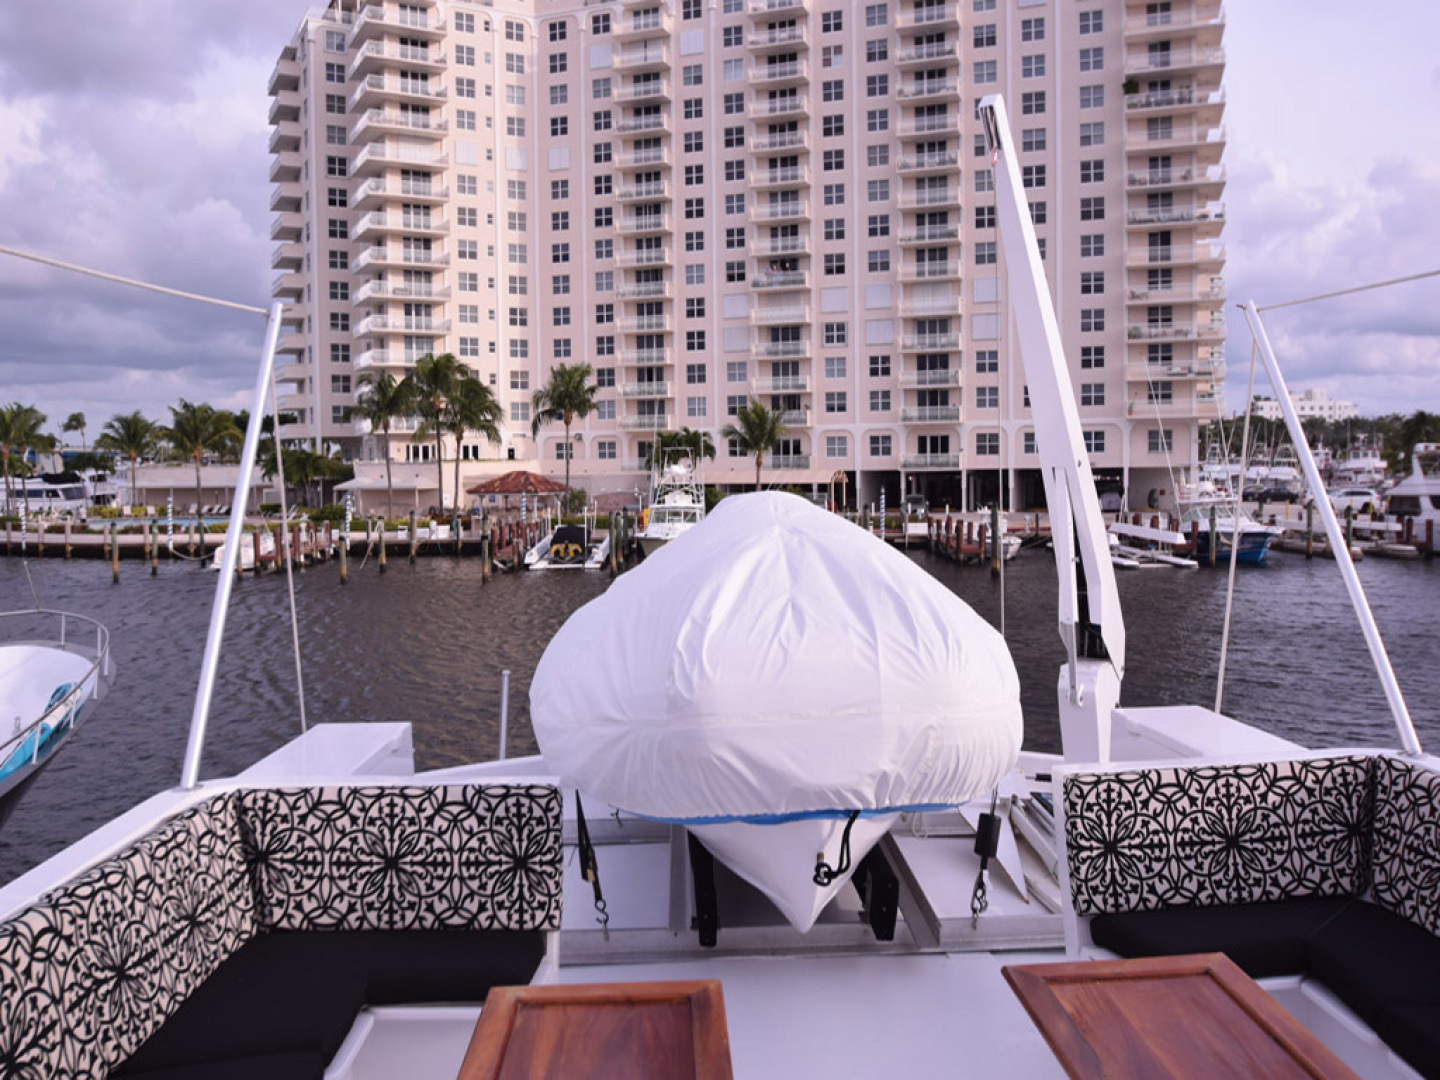 Hatteras-Cockpit Motoryacht 1989-Amelia Boca Raton-Florida-United States-Upper Deck With Tender-1206089 | Thumbnail